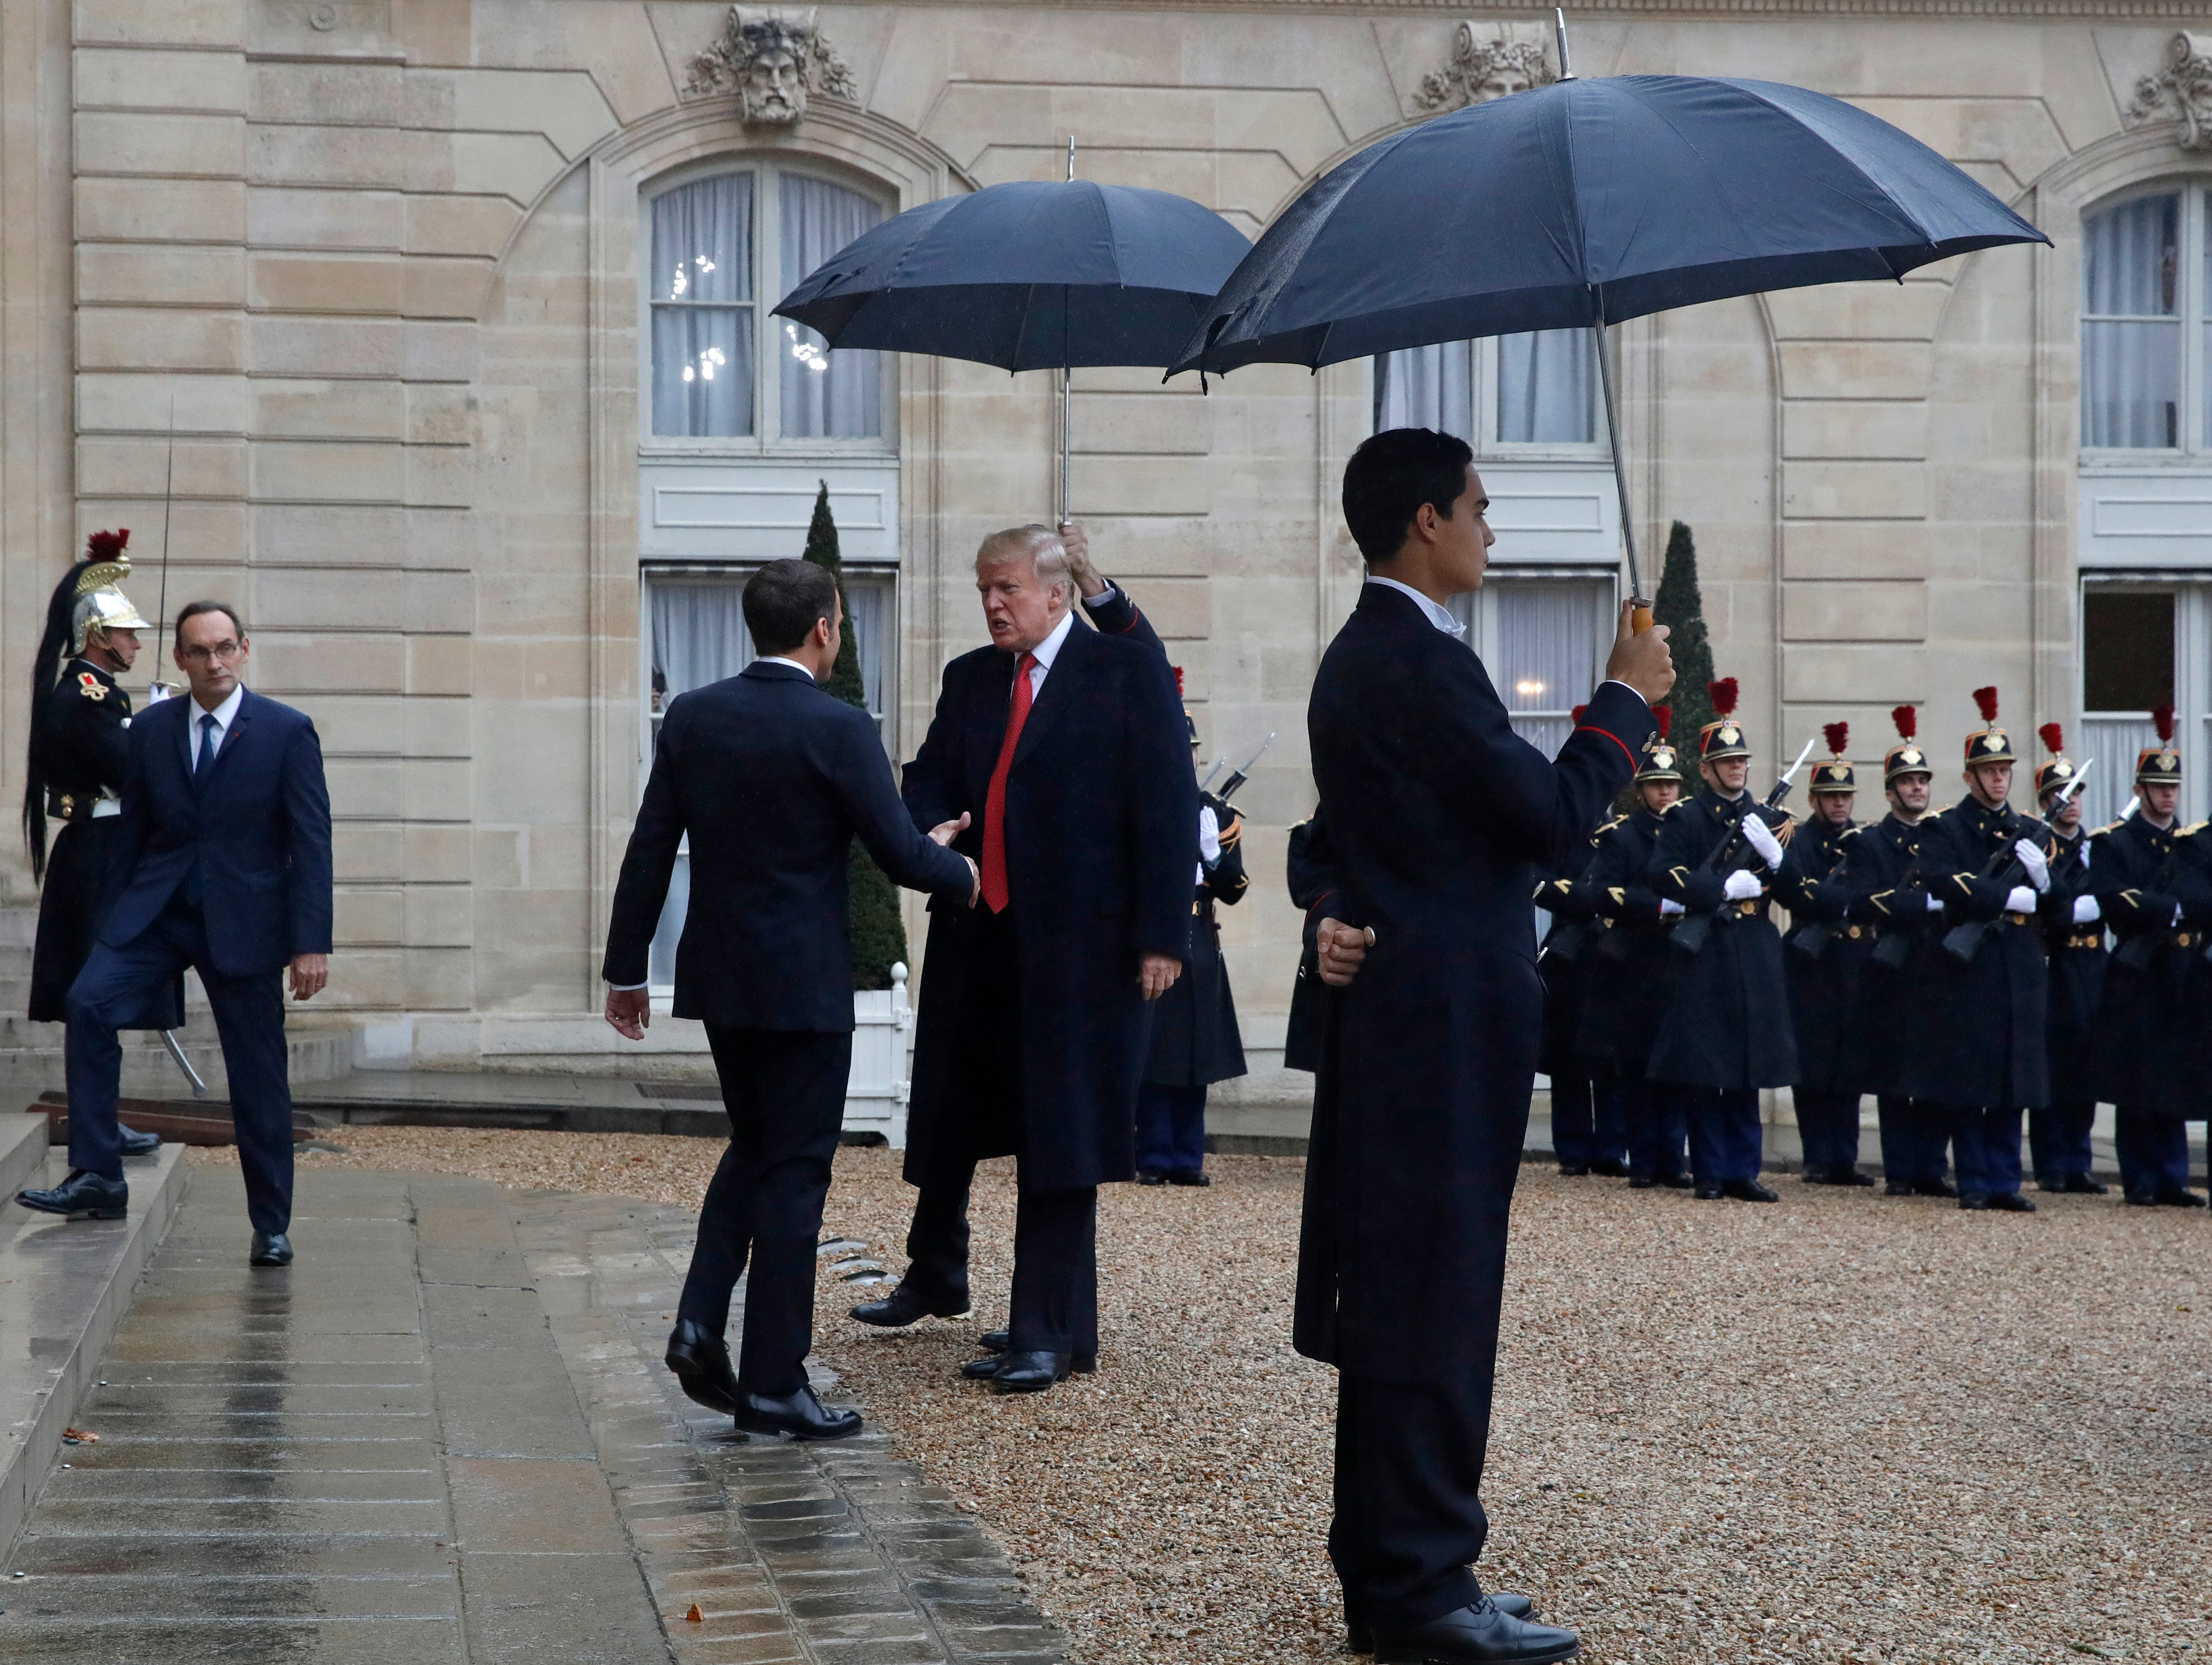 President Donald Trump is greeted by French President Emmanuel Macron after arriving at the Elysee Palace in Paris, Saturday Nov. 10, 2018. Trump is joining other world leaders at centennial commemorations in Paris this weekend to mark the end of World War I.